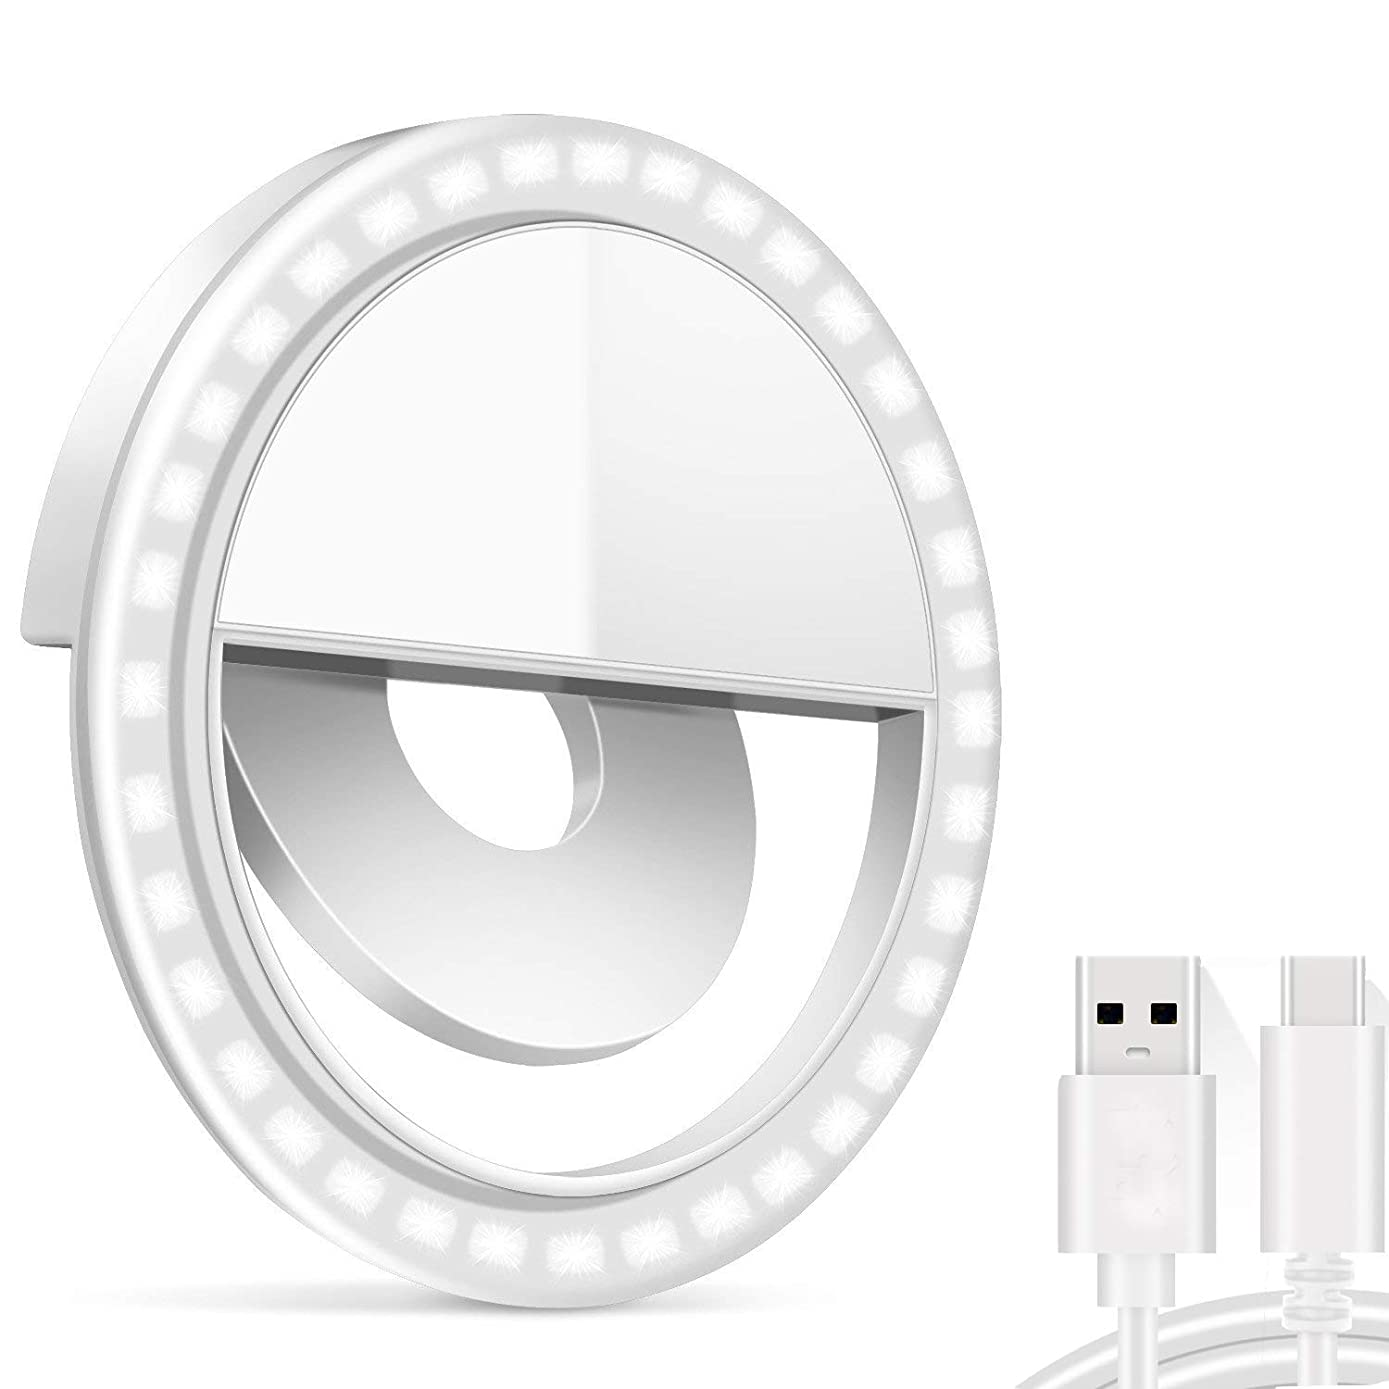 Rechargeable Selfie Ring Light - Tekcast 36 LED Clip-on LED Camera Light, Round Shape LED Fill-Light for Phone Pad Galaxy, Other Smart Photography Phones, White